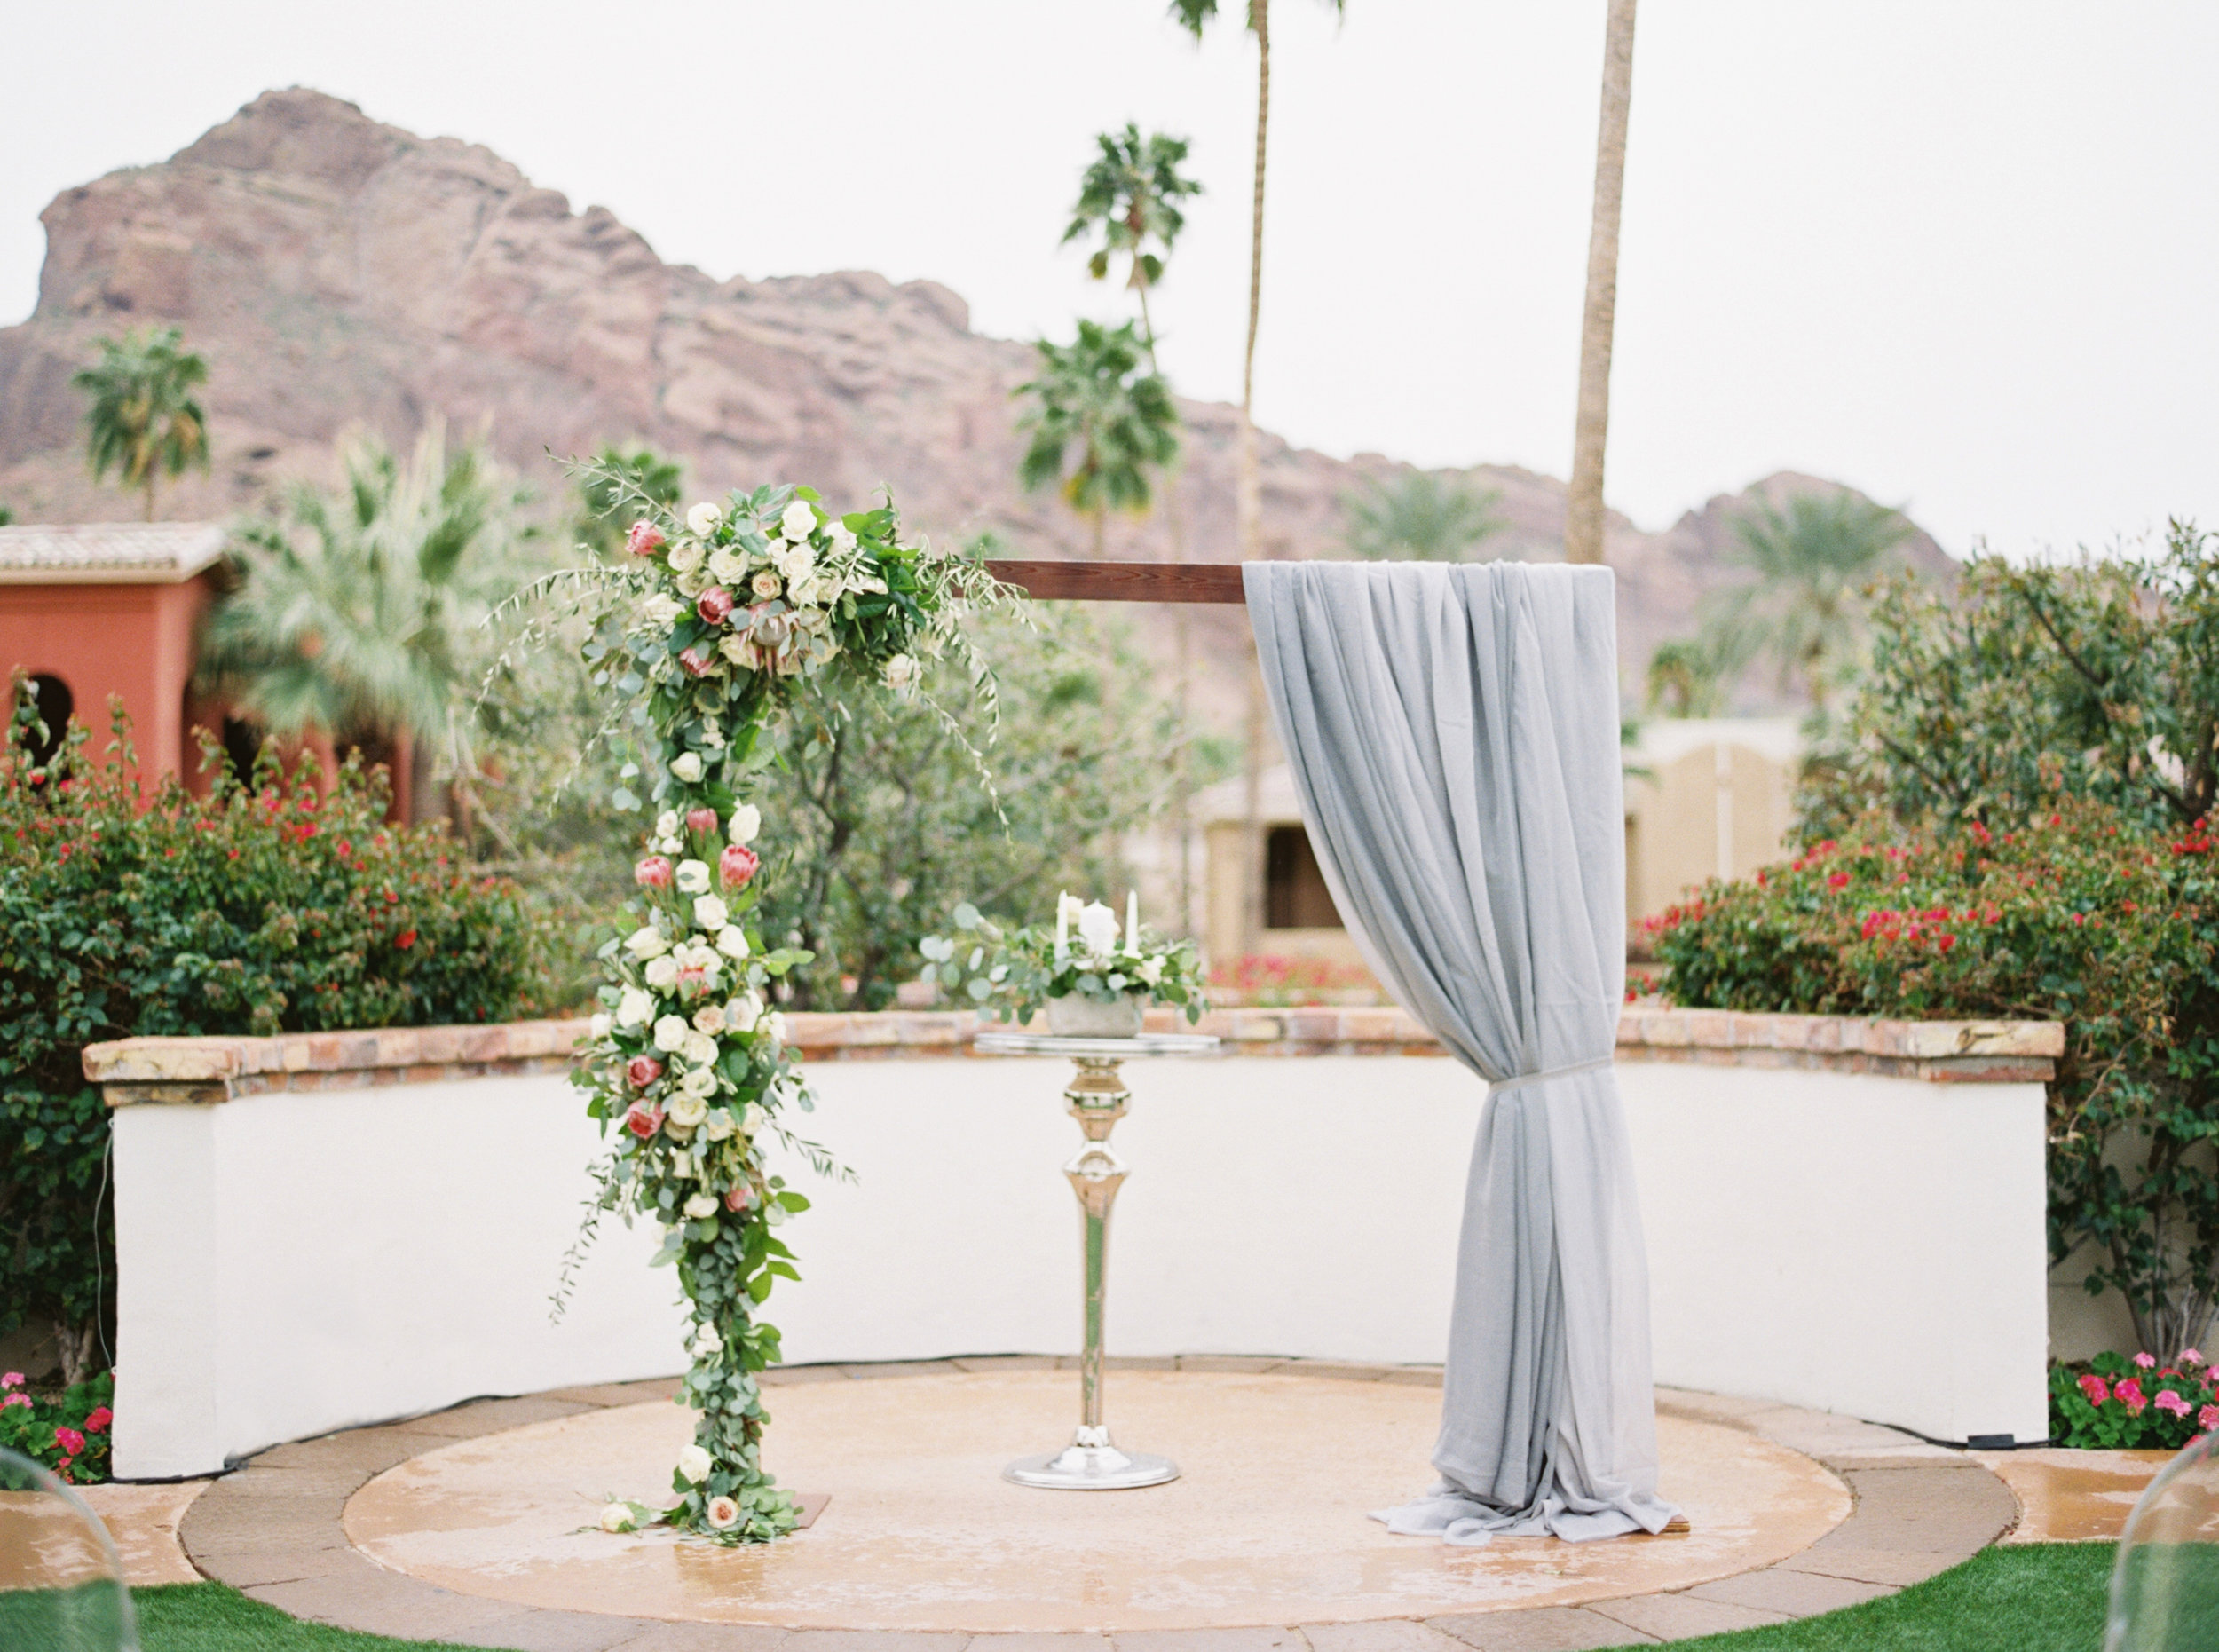 28 wedding arch ceremony arch fabric draped arch floral arch floral swag unity candle mountain view outdoor wedding ceremony Life Design Events photos by Melissa Jill Photography.jpg